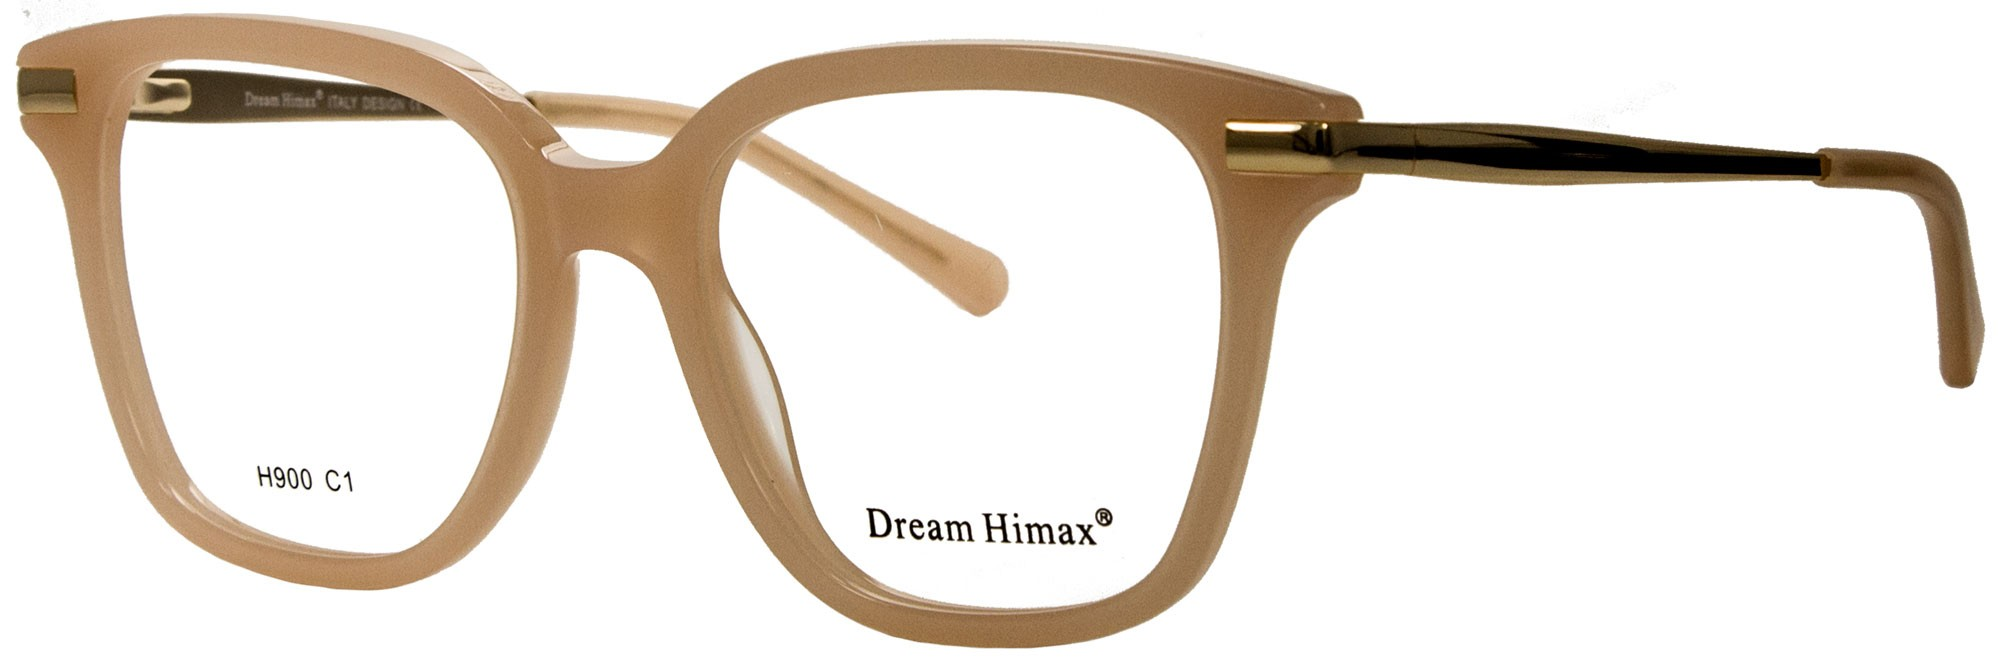 Dream Himax H900 C1 2